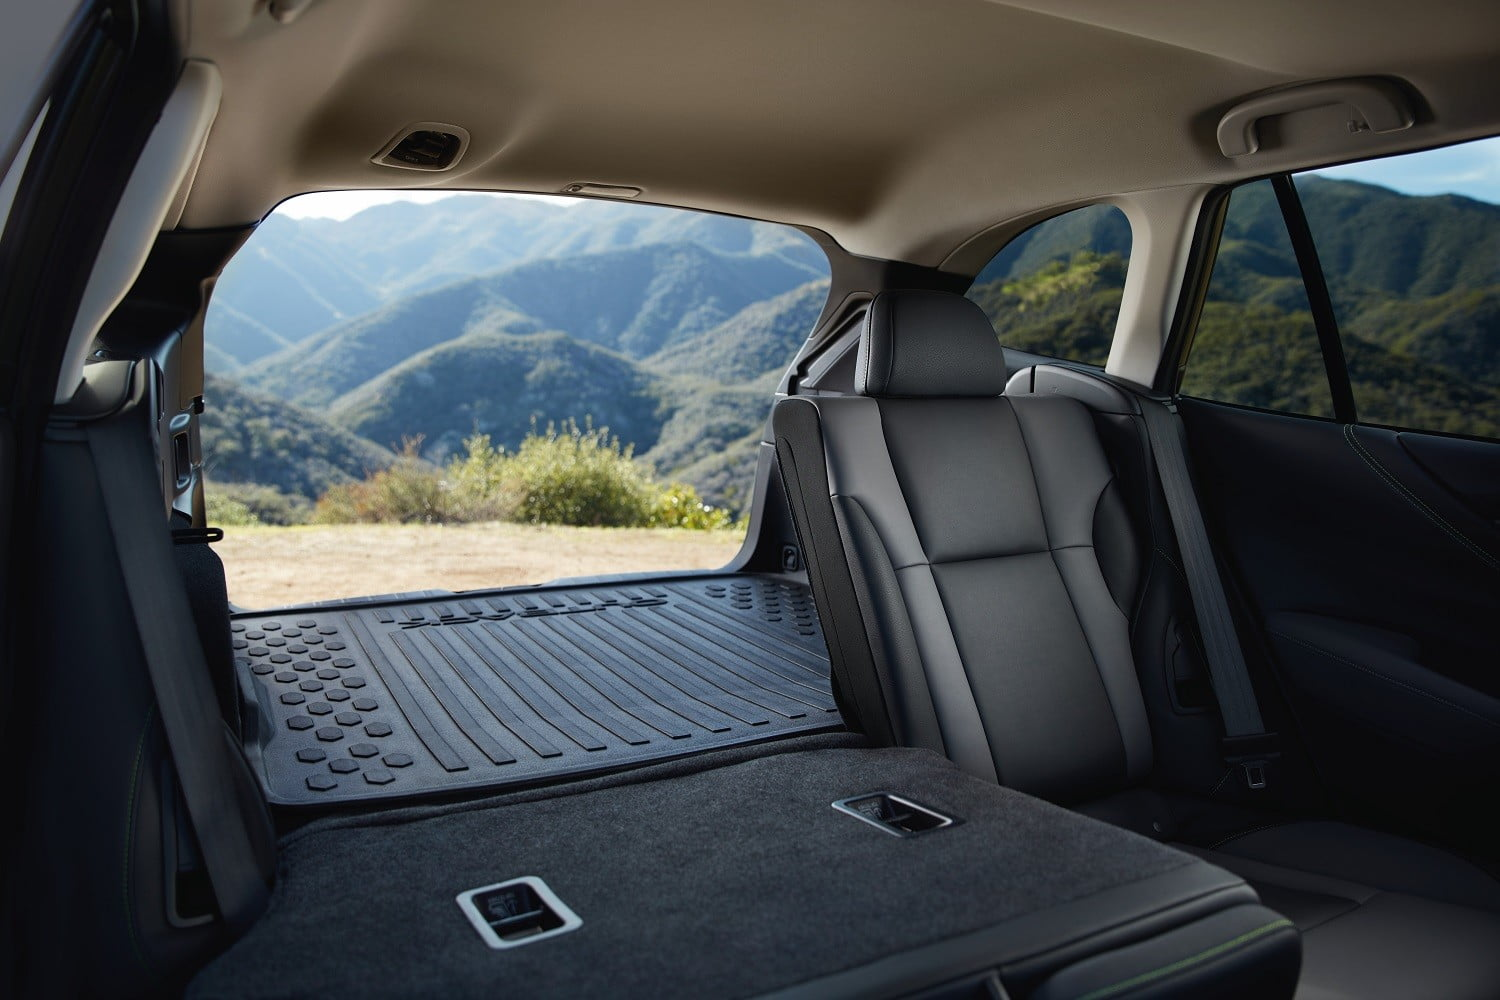 2020 Subaru Outback Available With Water Repellent Startex Upholstery Digital Trends